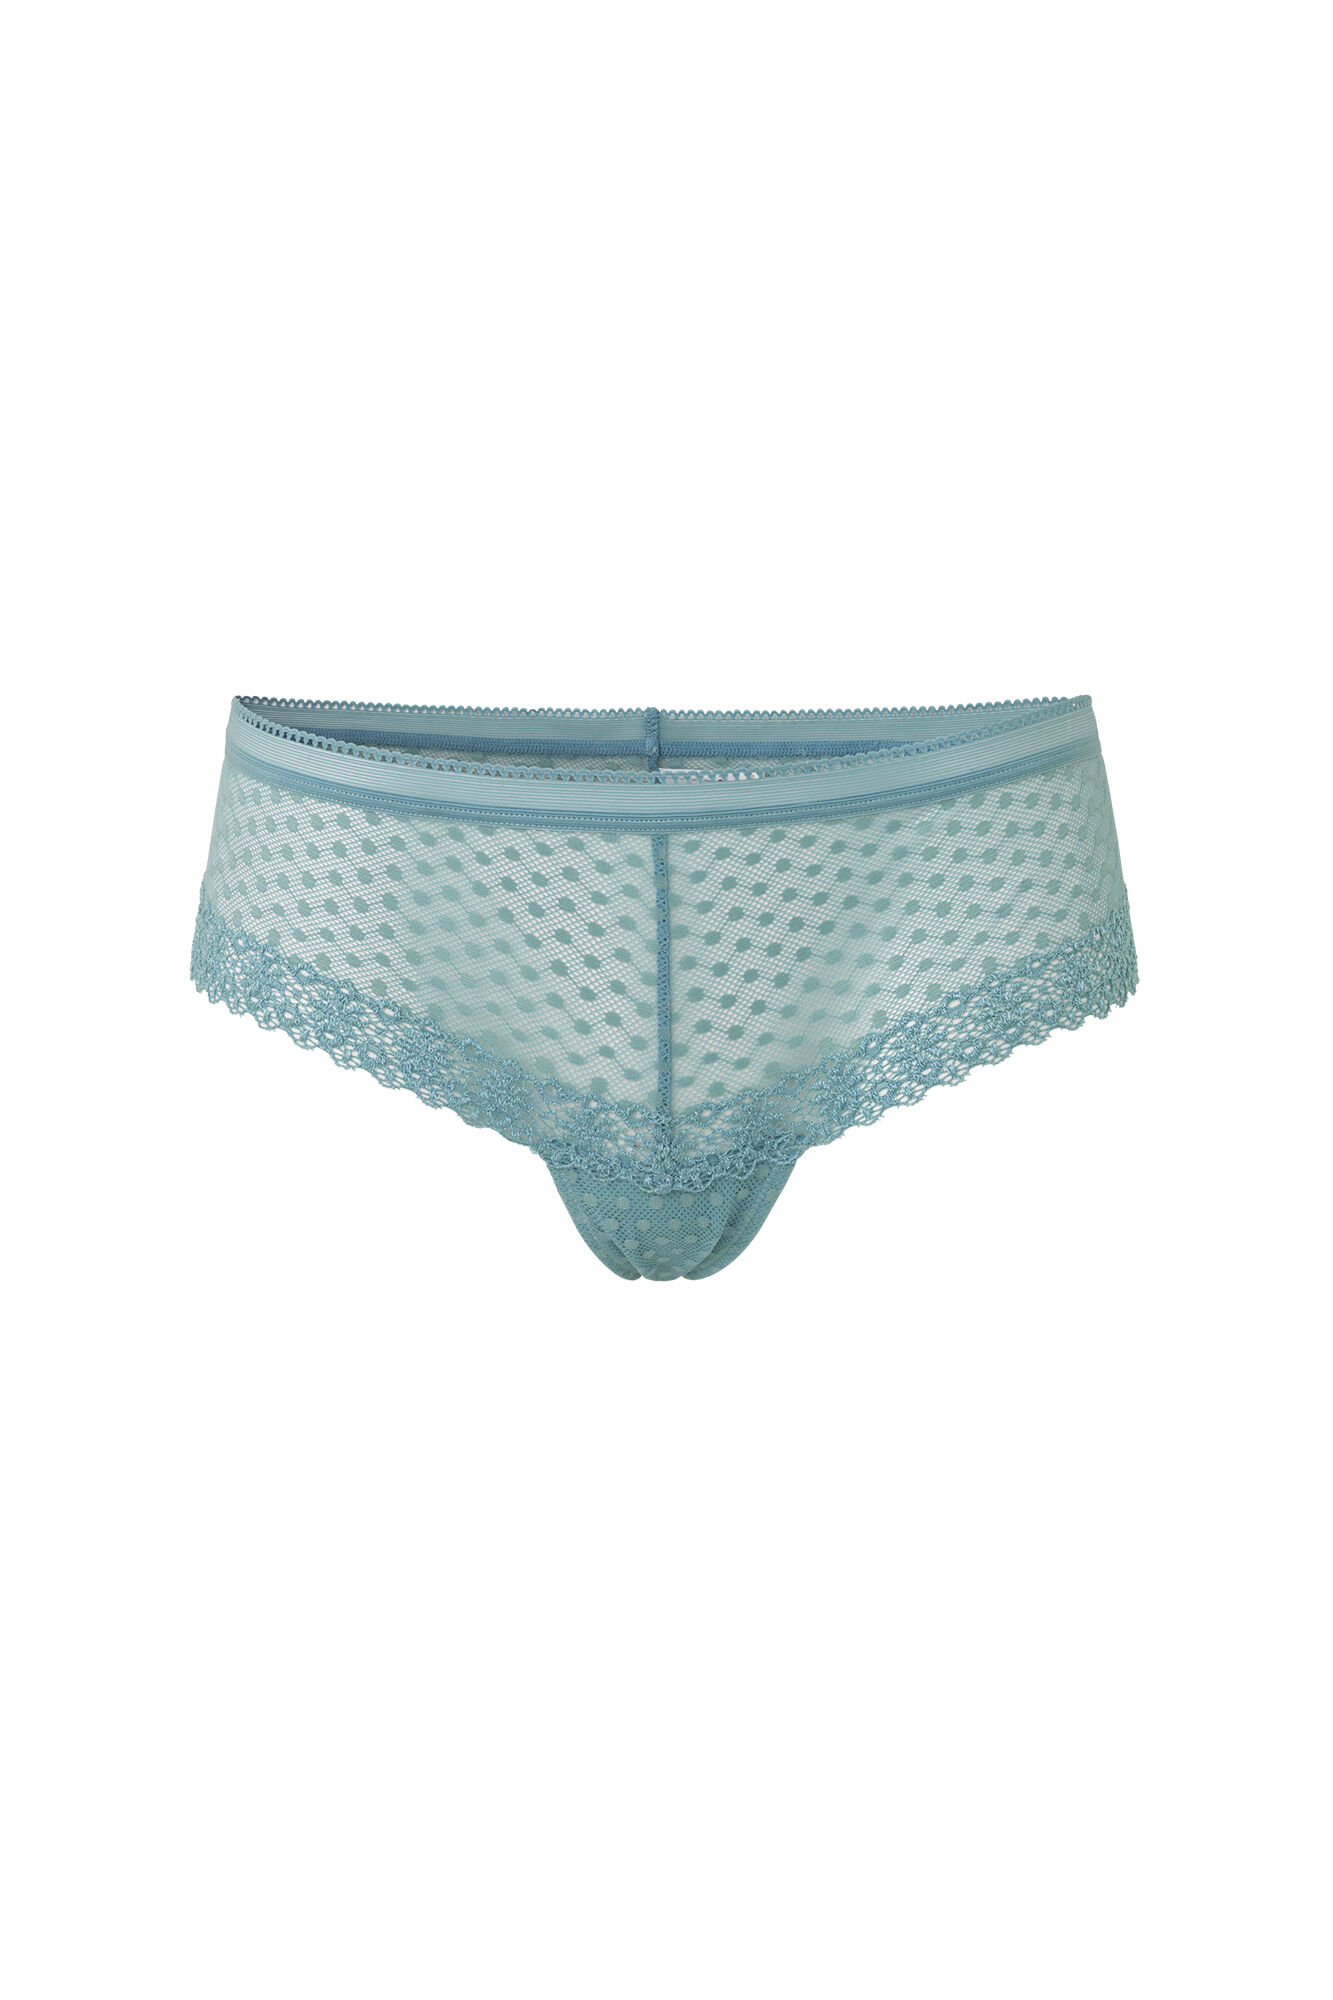 ENCHIA PANTIES 5905